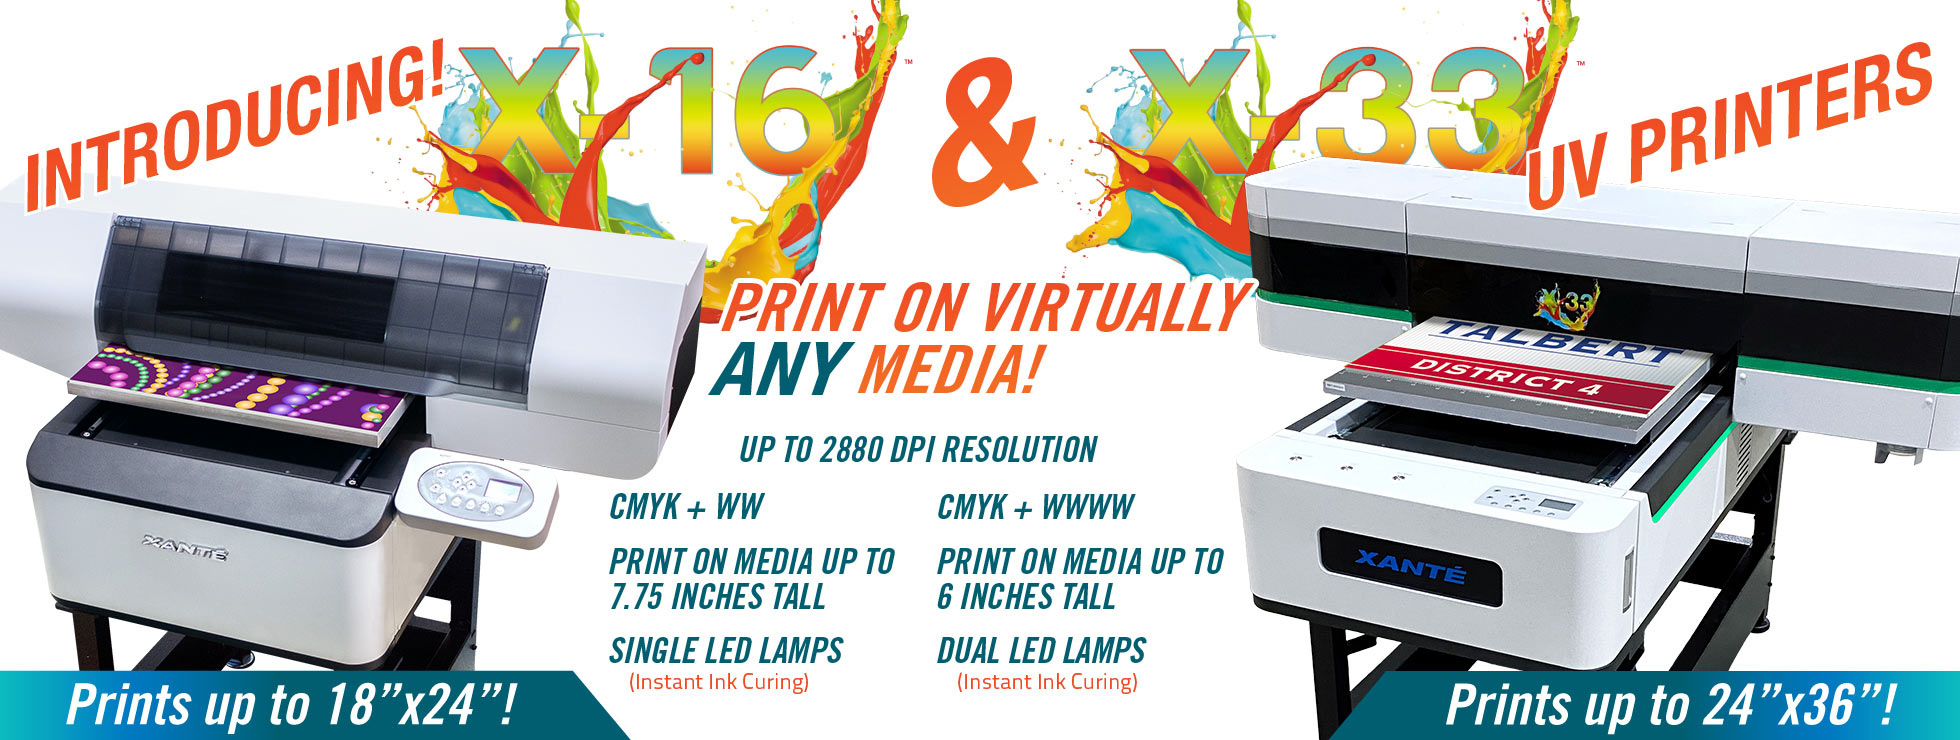 X-16 and X-33 UV Printer